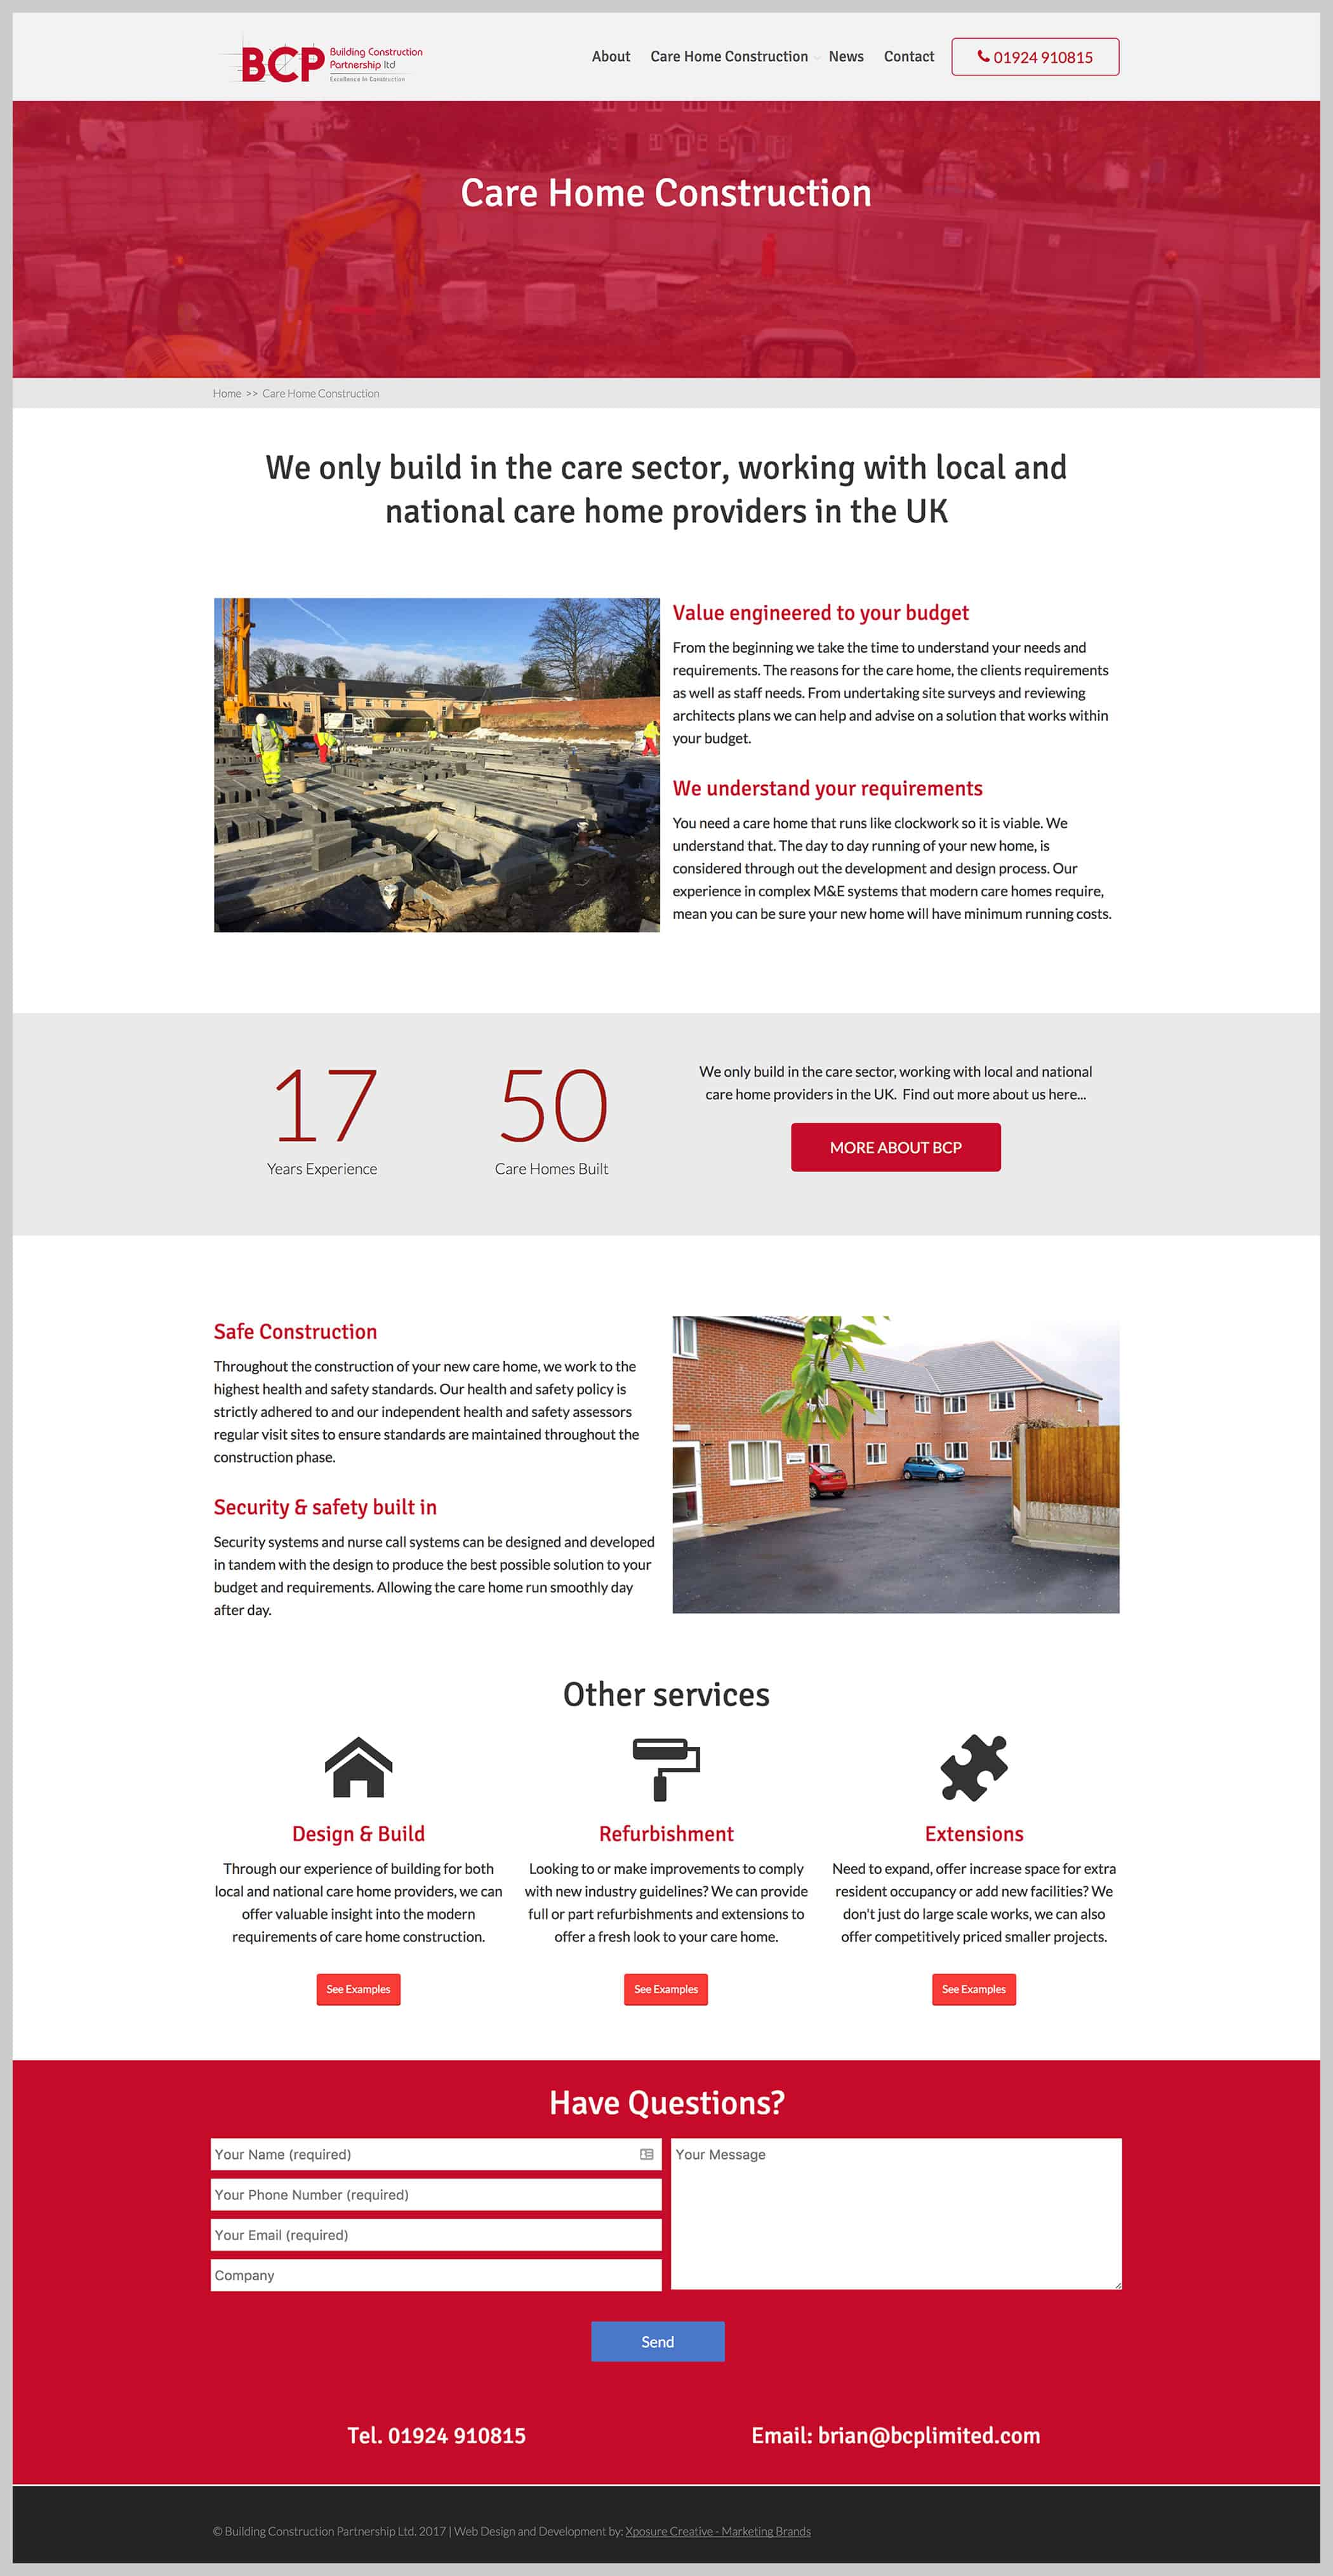 bcp care home construction website page